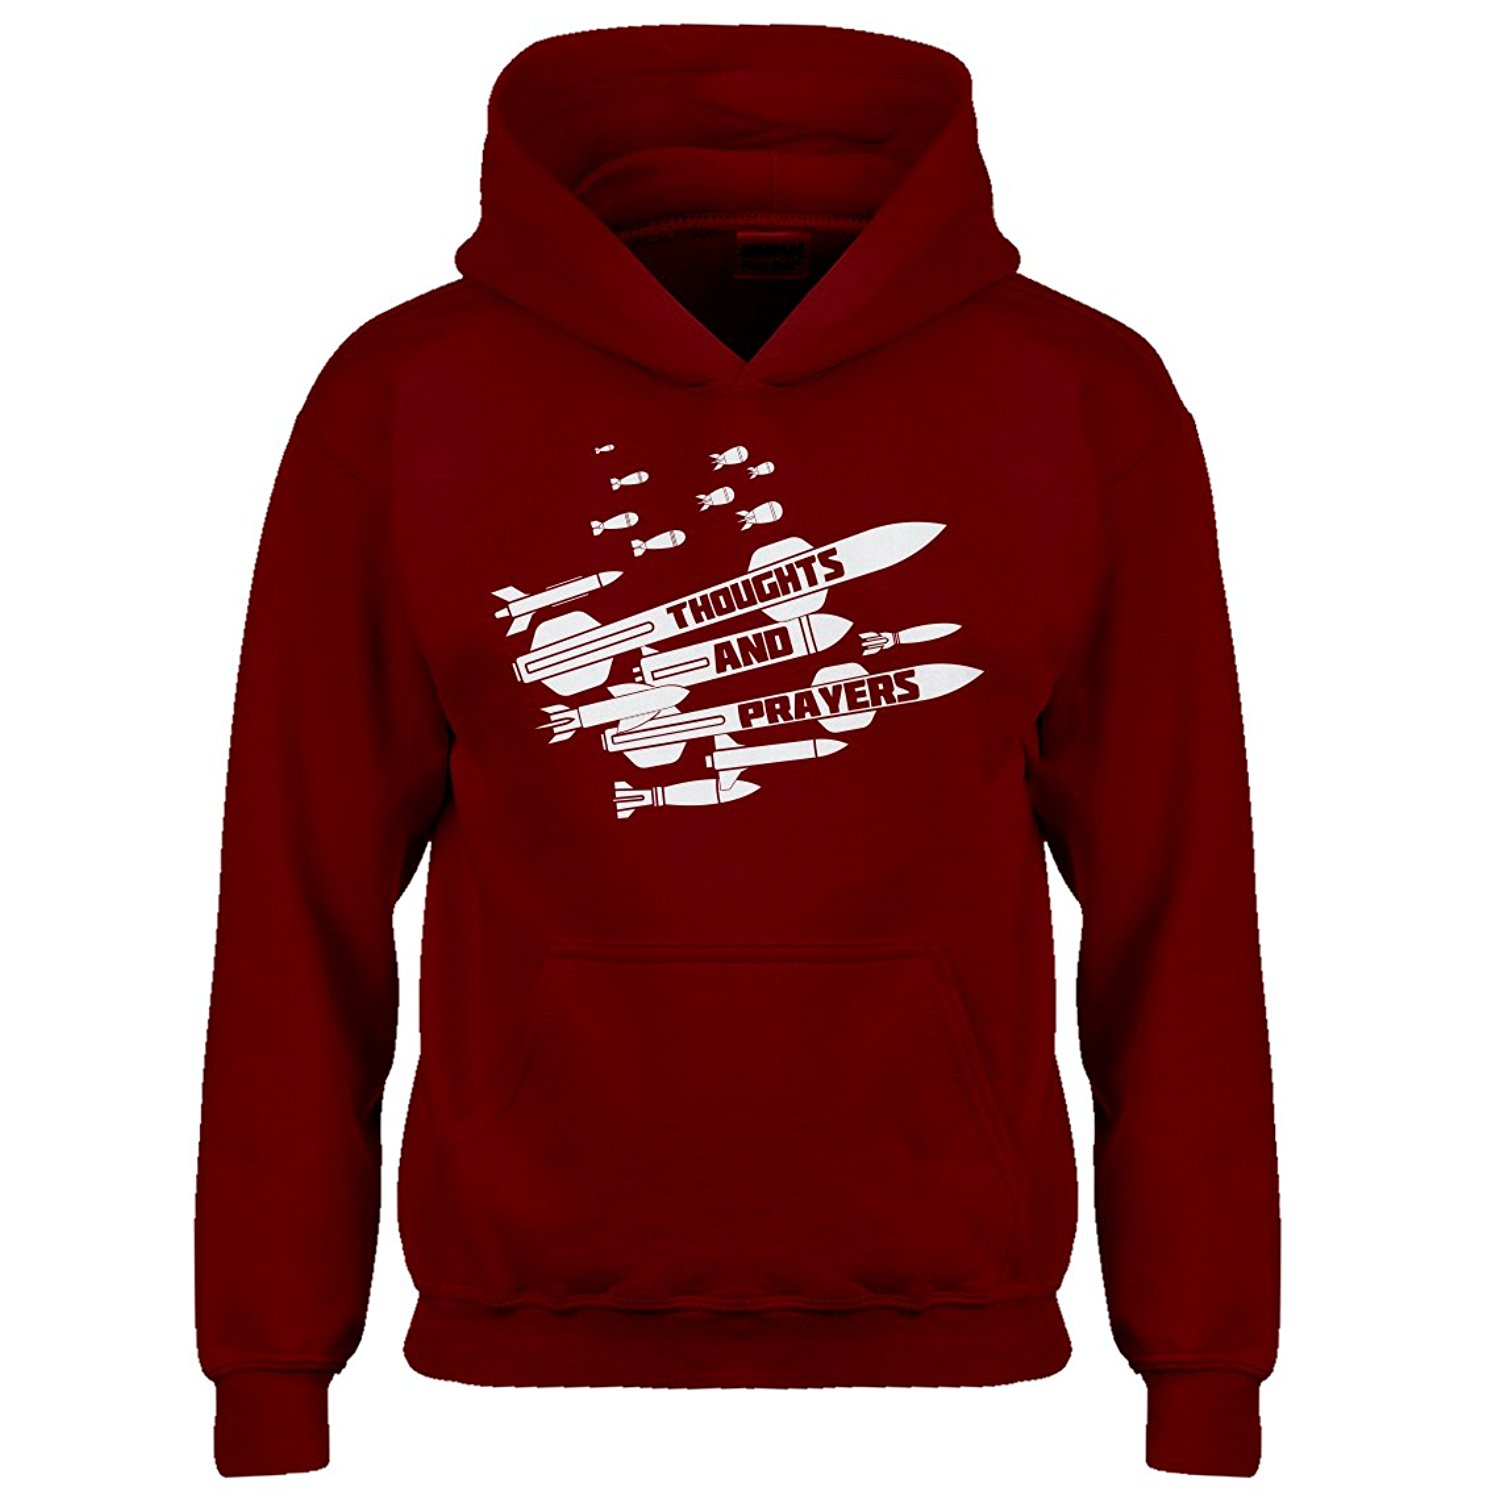 Indica Plateau Youth Thoughts and Prayers Kids Hoodie